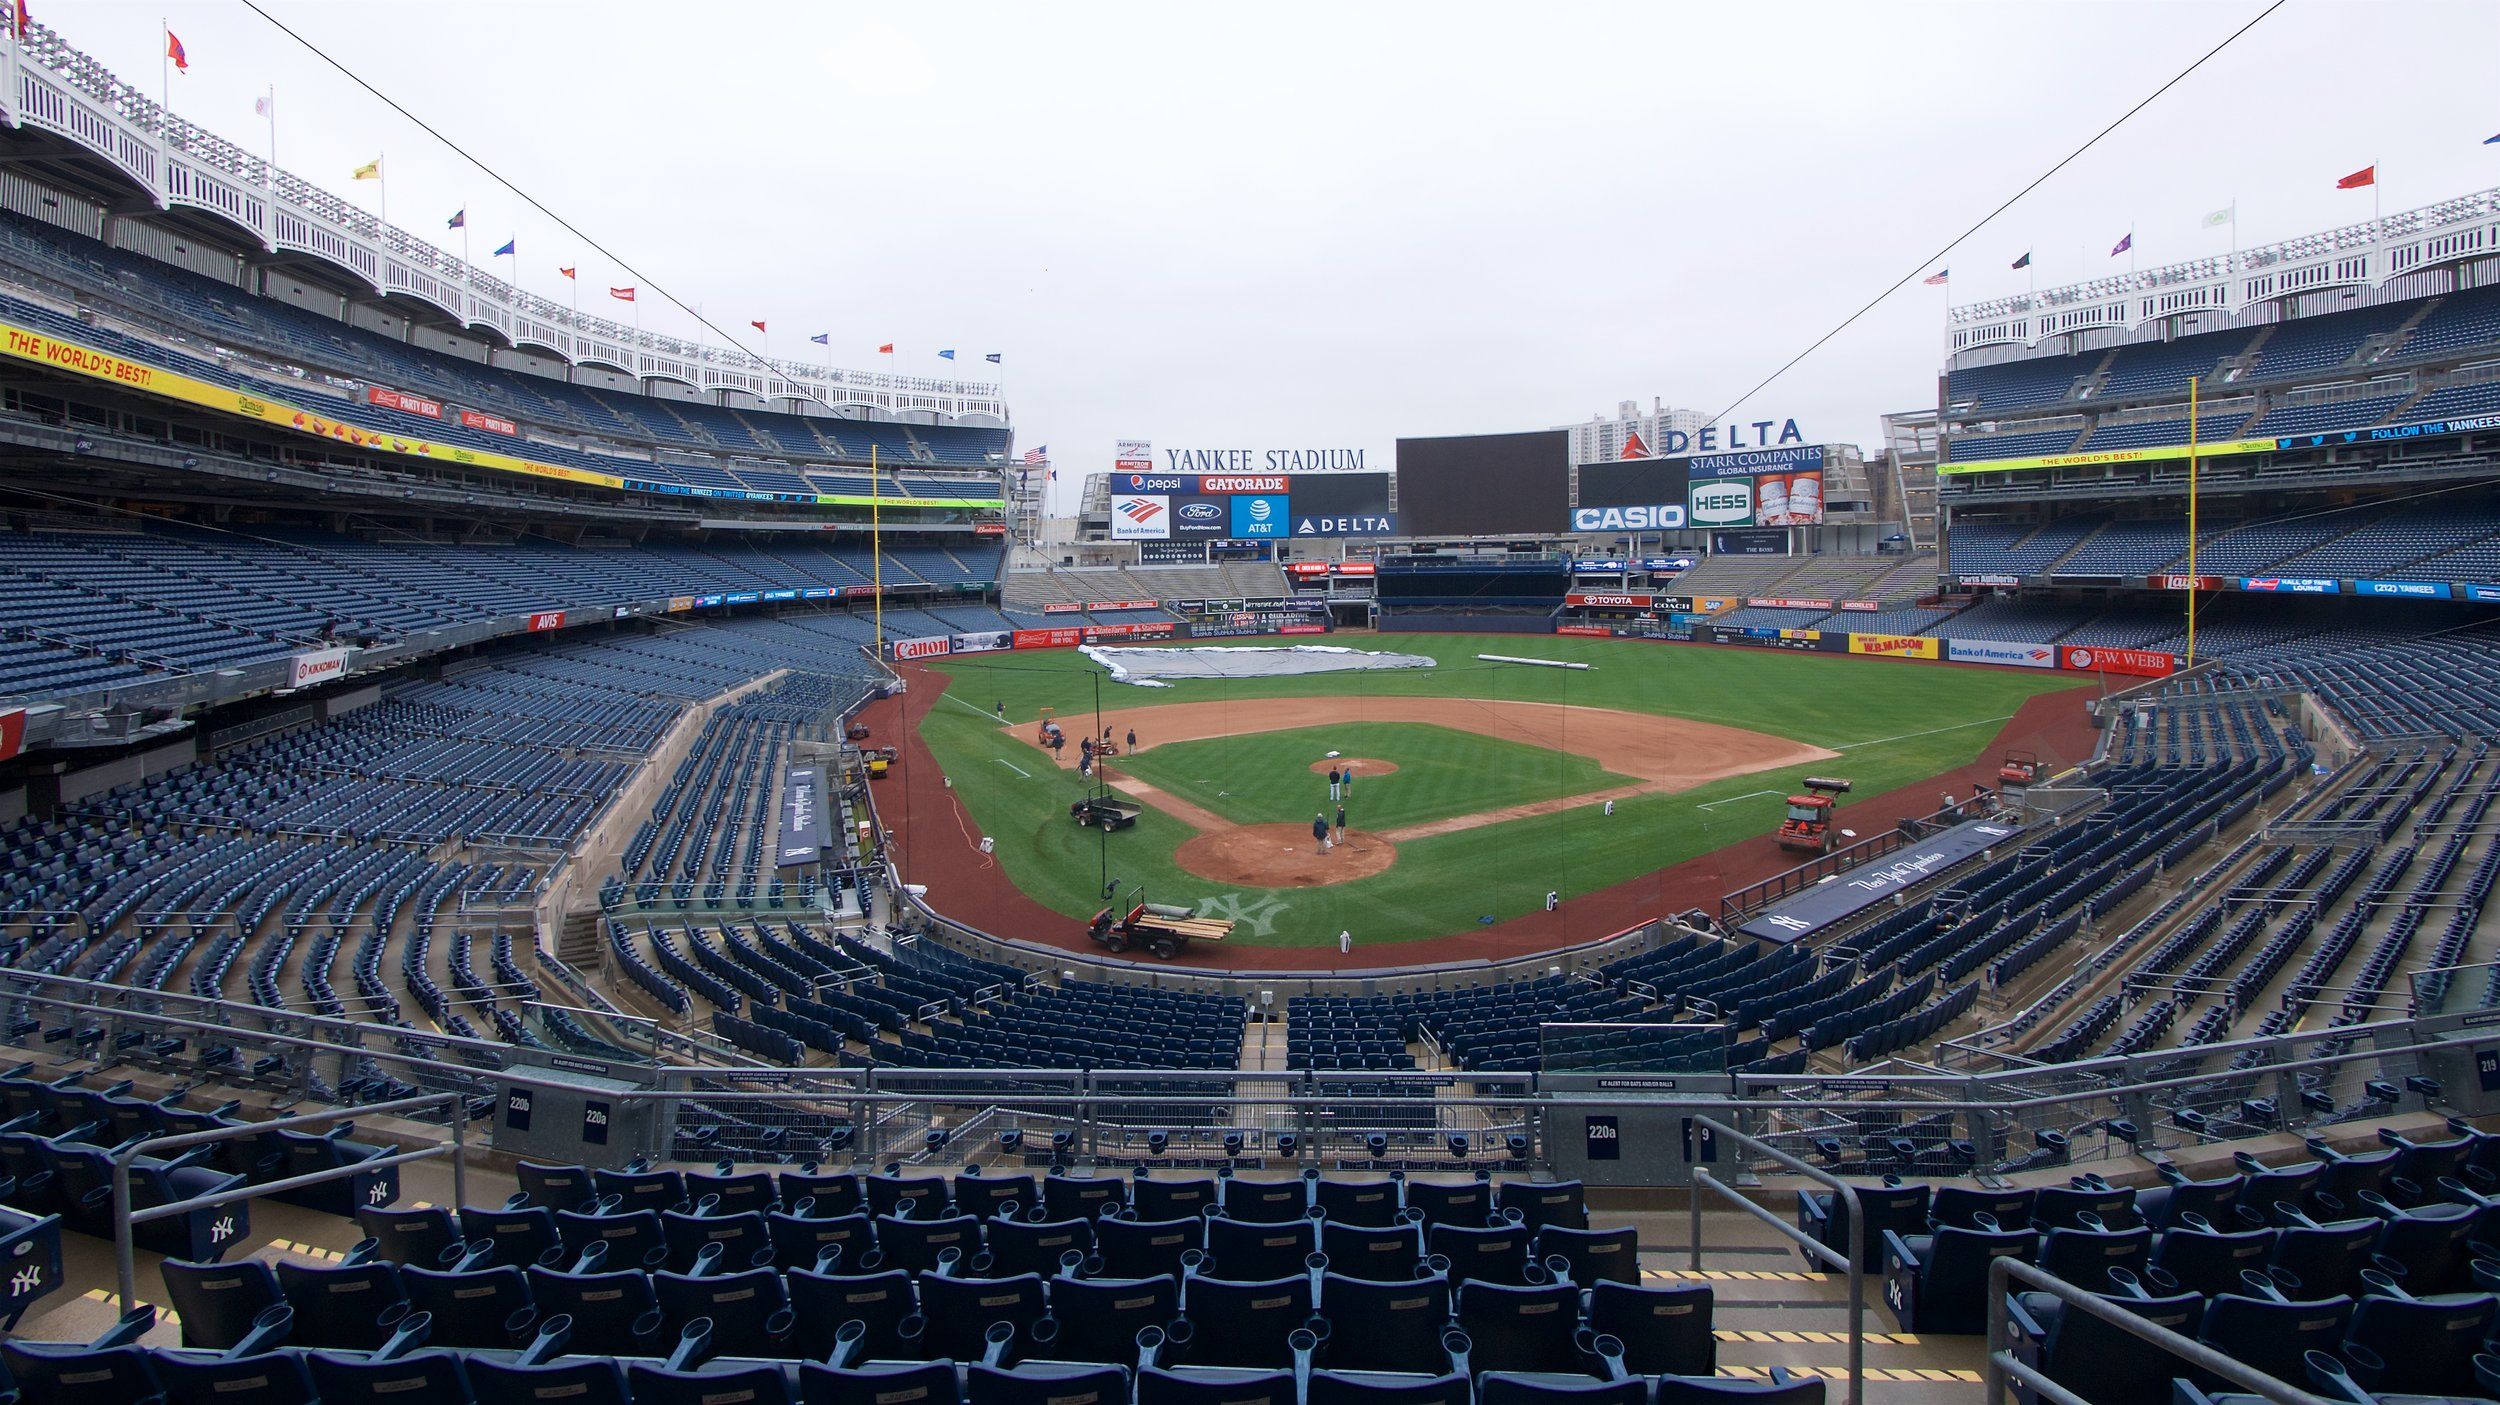 Field getting prepared for a game